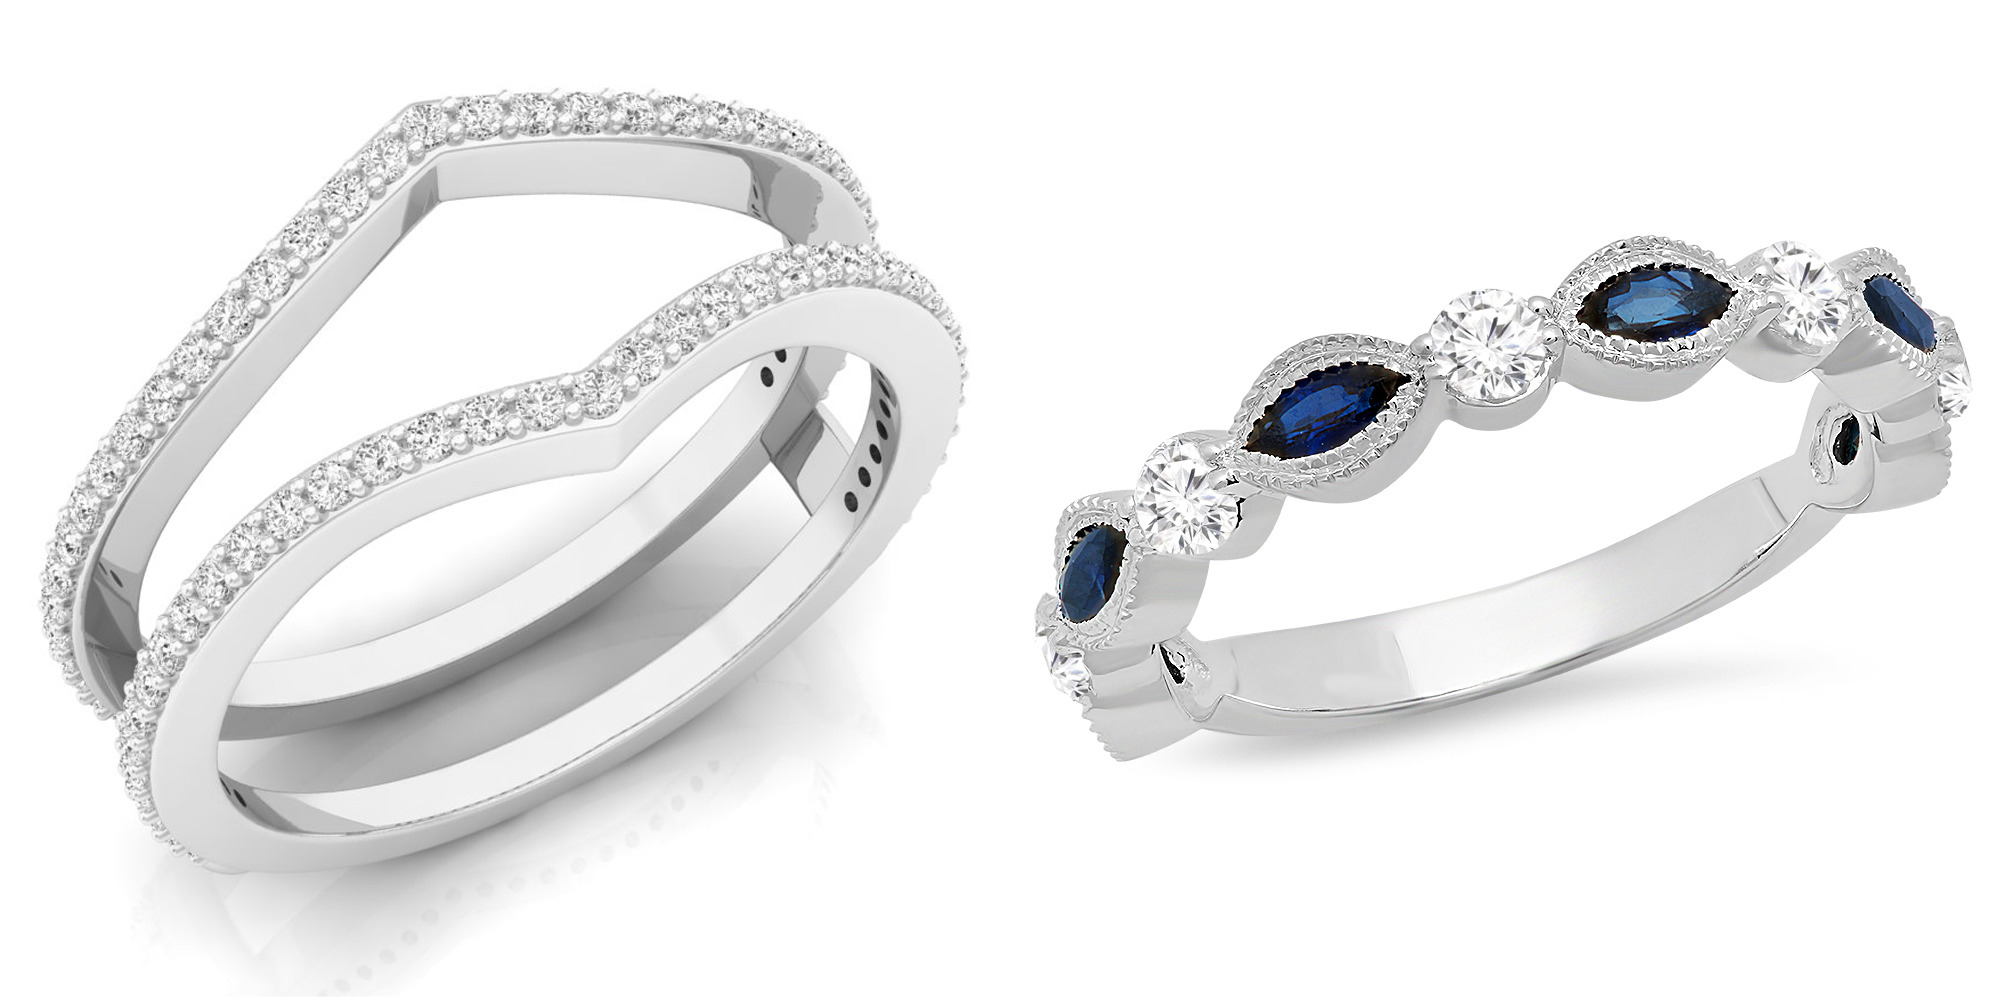 Diamond Anniversary Ring For wedding and anniversary- Dazzling Rock